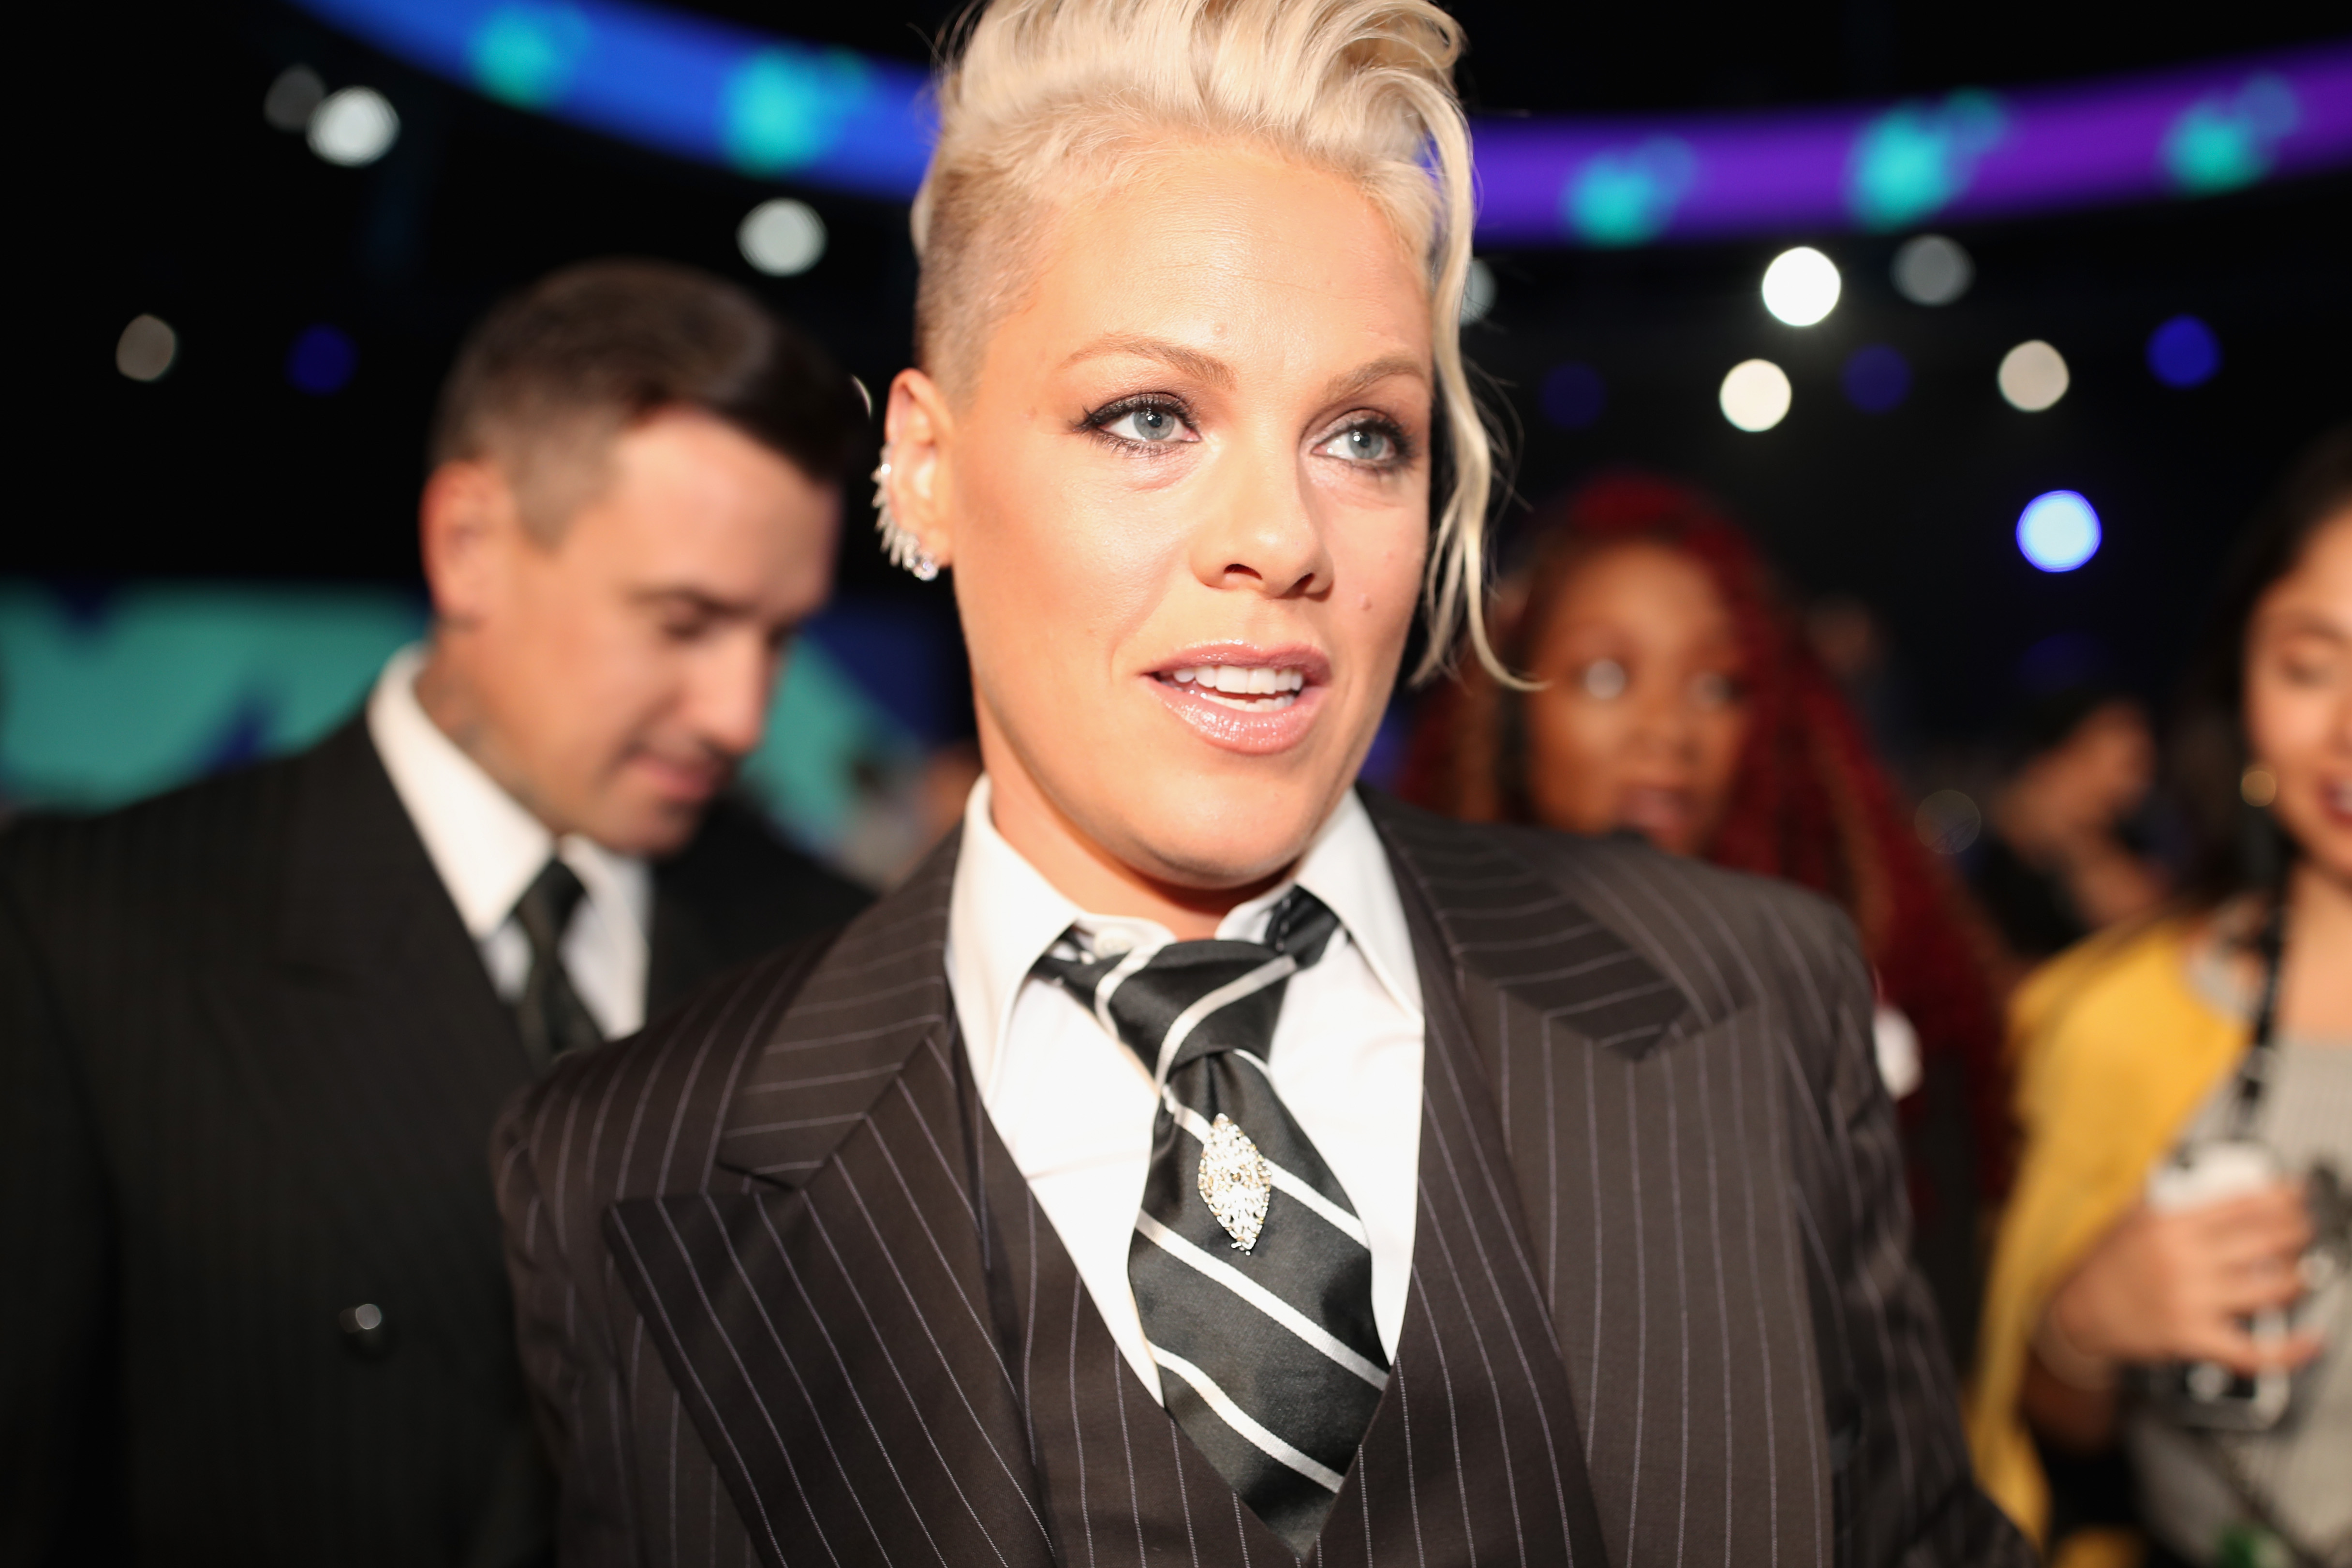 Pink, Pink VMAs 2017, Pink VMAs 2017 Performance, Pink MTV Video Music Awards, Pink MTV Music Awards 2017, Watch Pink VMAs Performance